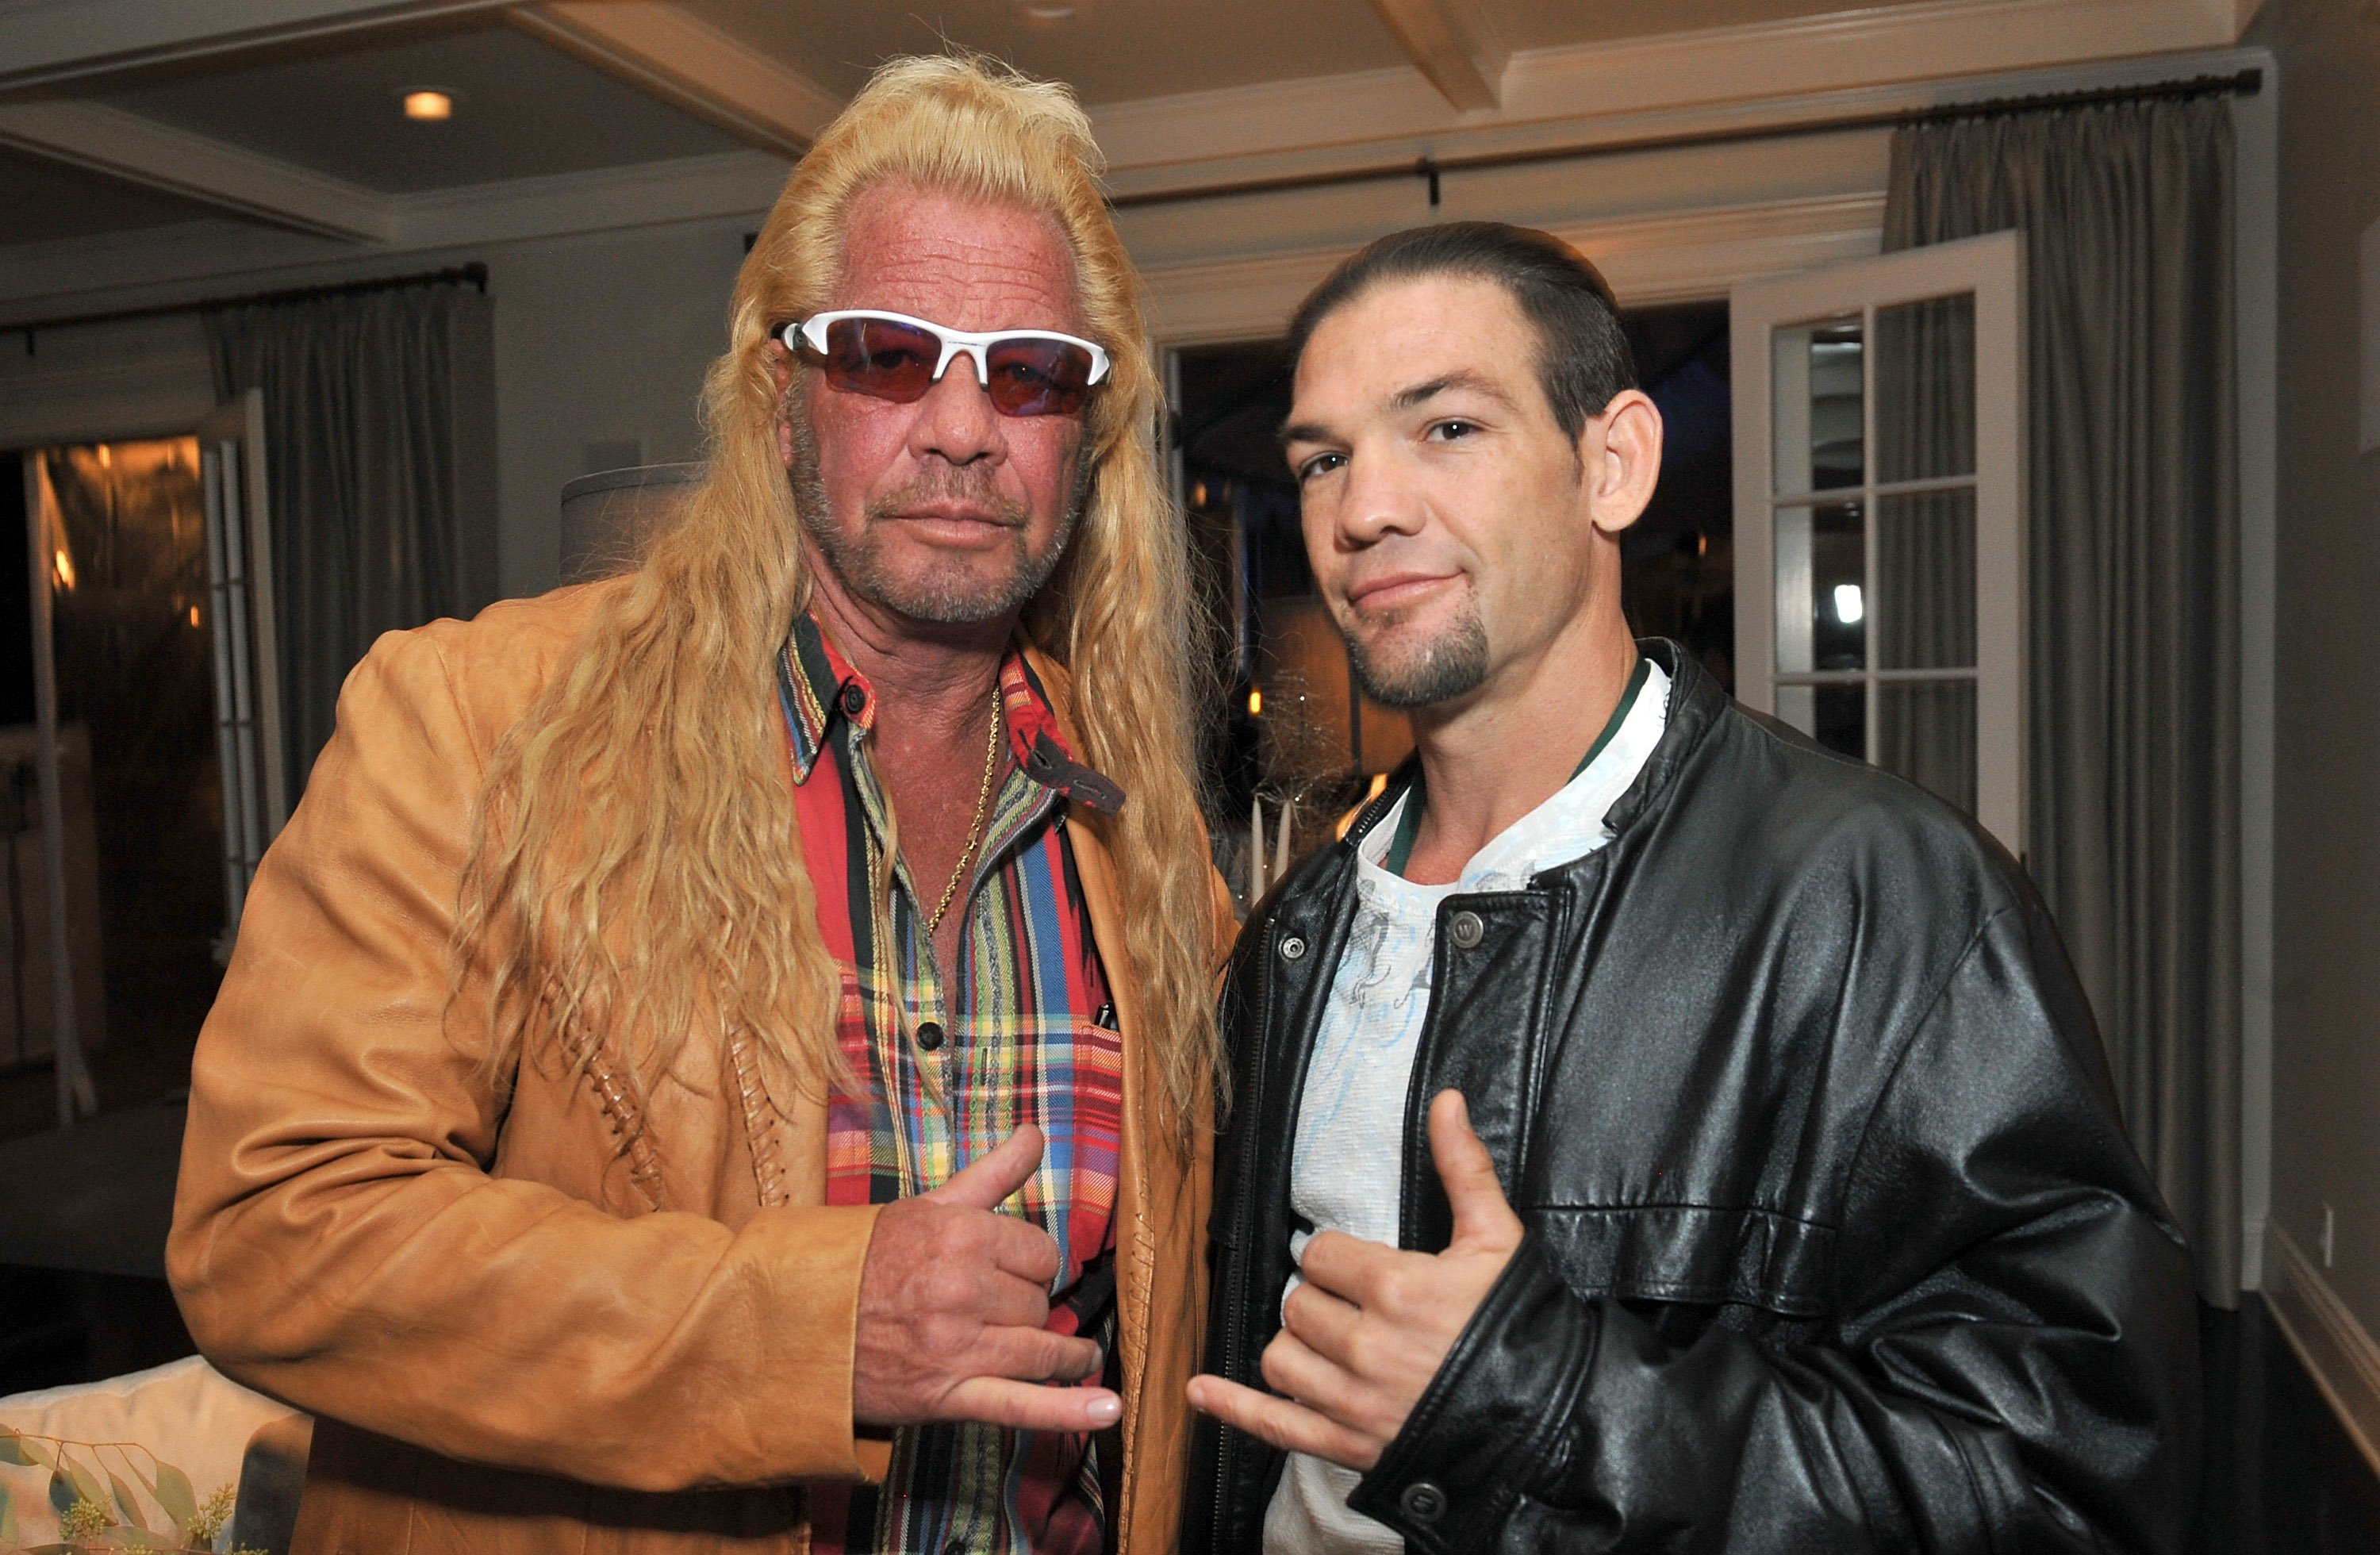 Dog Chapman and Leland Chapman attend the 2013 Electus & College Humor Holiday Party on December 12, 2013, in Los Angeles, California. | Source: Getty Images.